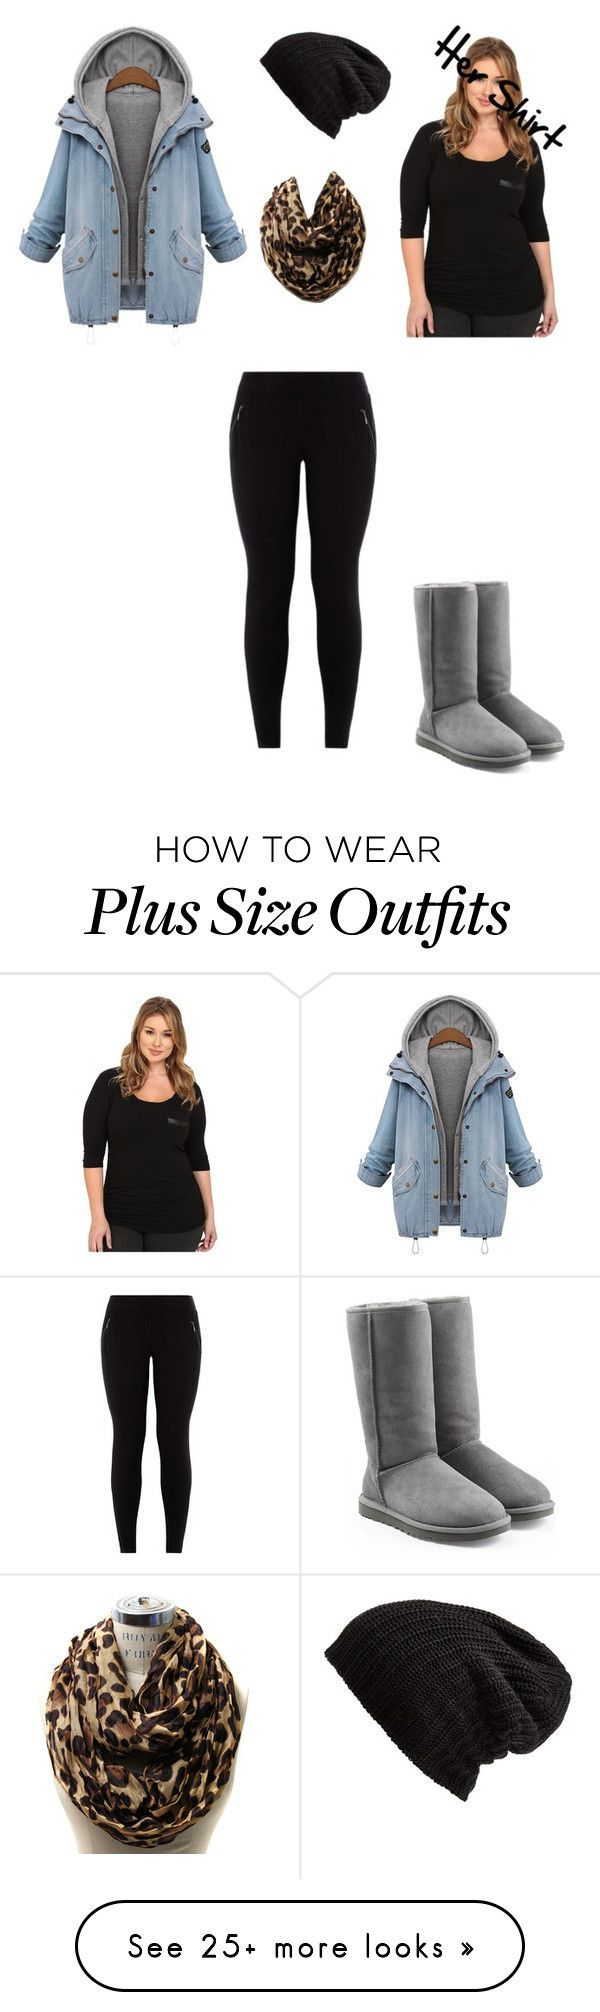 Untitled #52 by into-fashion on Polyvore featuring Soybu, UGG Australia, Free People and plus size clothing